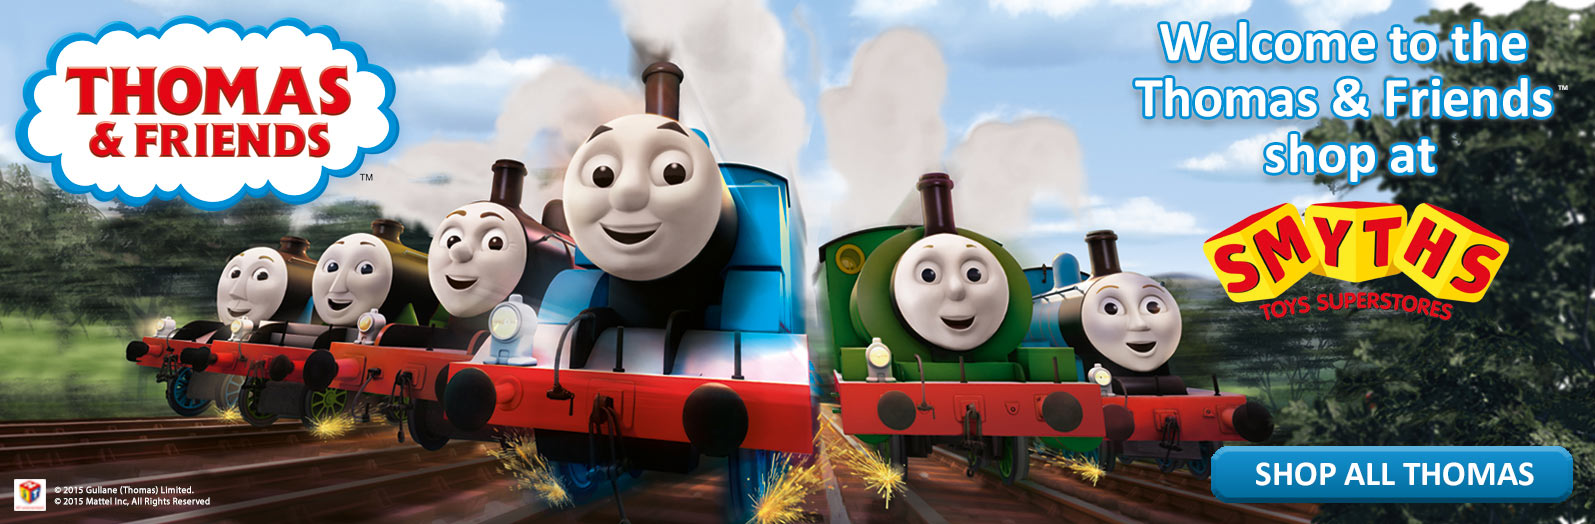 Welcome to the Thomas and Friends Shop at Smyths Toys Superstores!